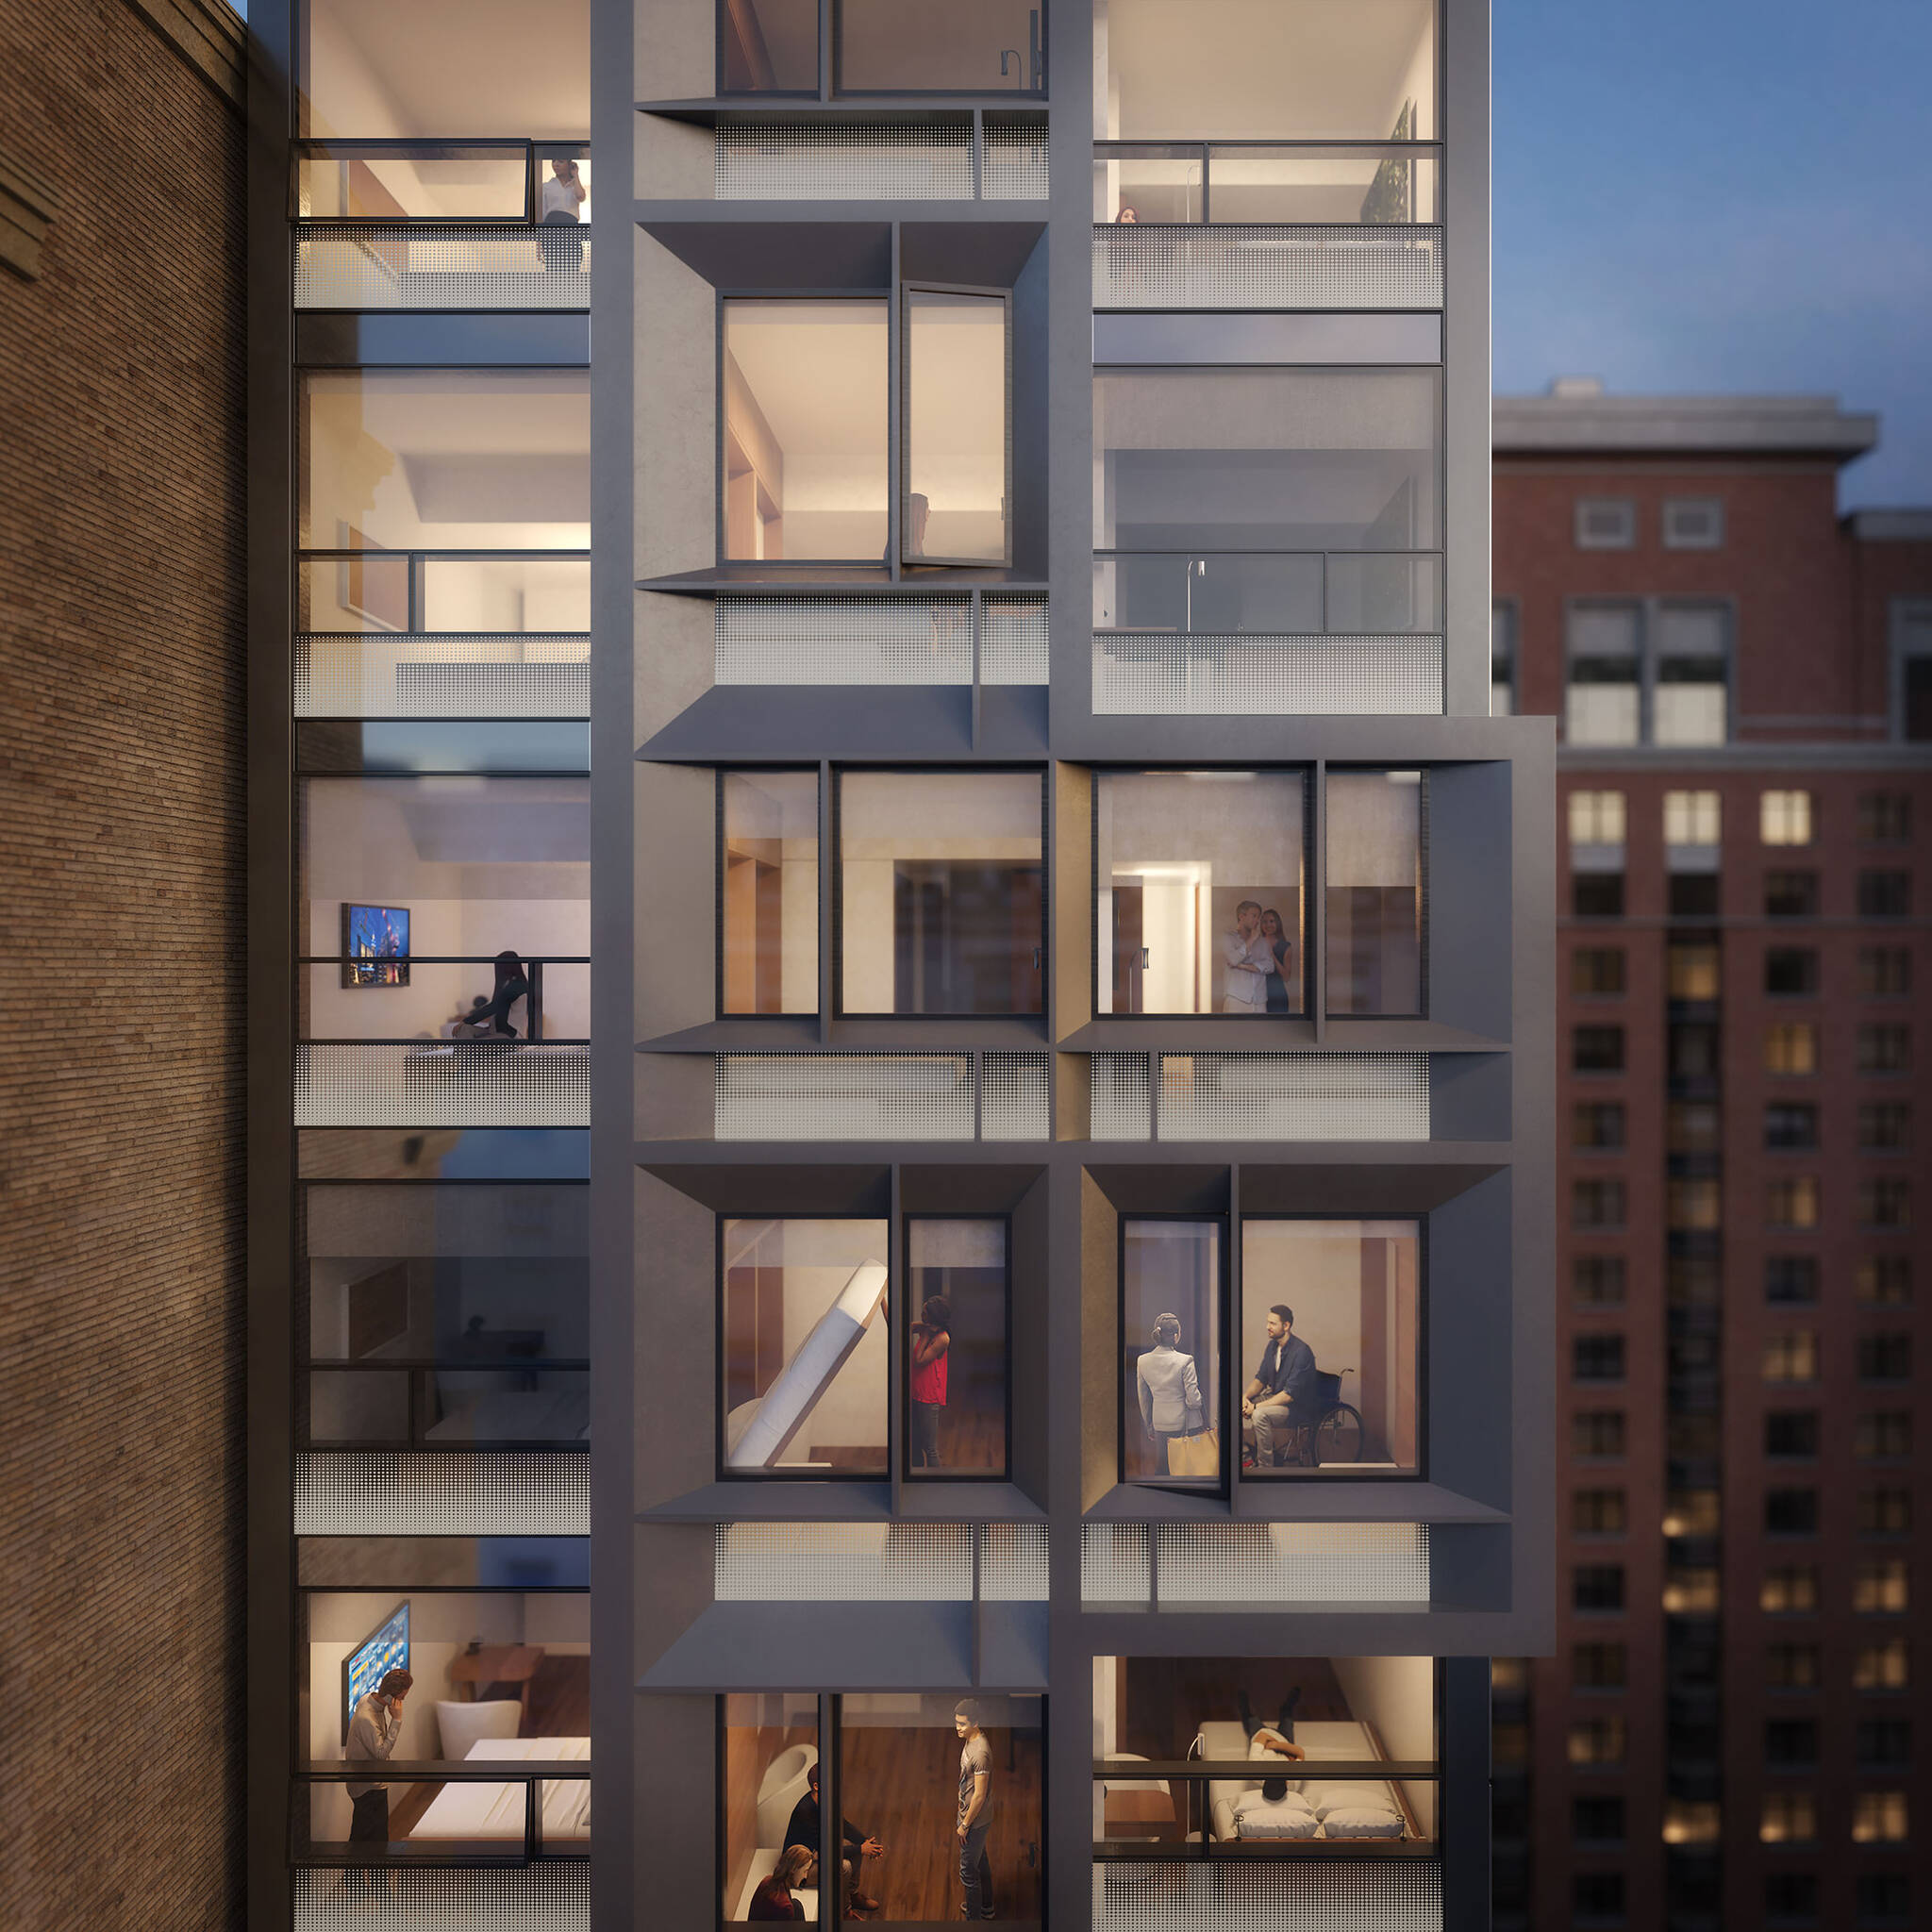 View from outside of the Brooklyn Motto Hotel project on Schermerhorn Street in Brooklyn, New York designed by the architecture studio Danny Forster & Architecture